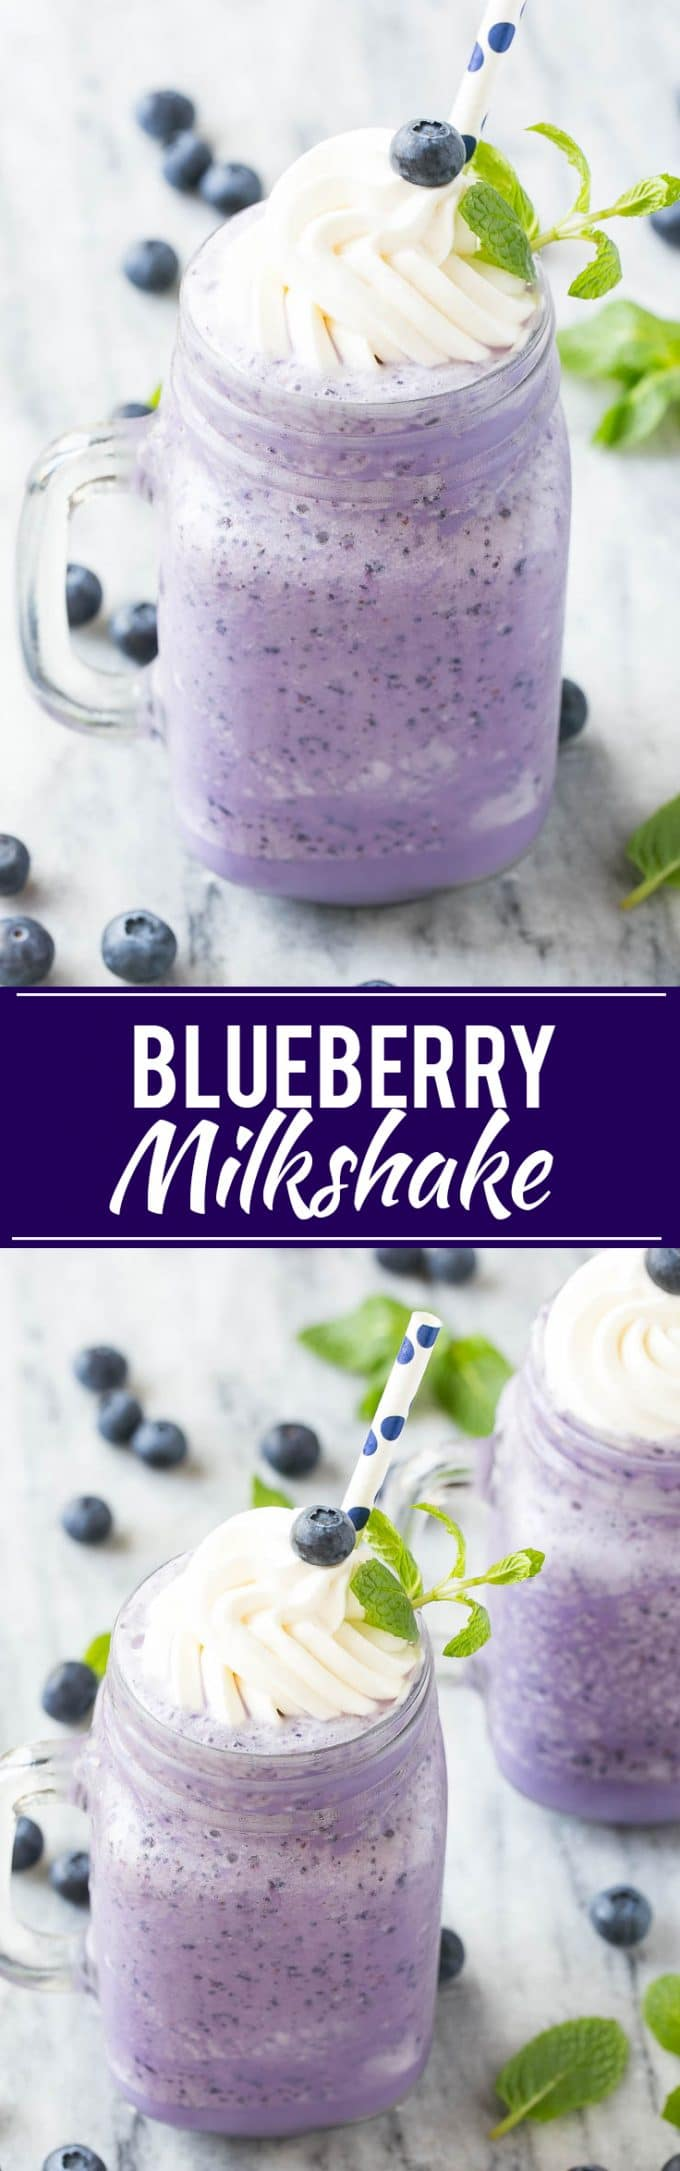 Blueberry Milkshake Recipe | Healthy Blueberry Milkshake | Light Blueberry Milkshake | Easy Blueberry Milkshake